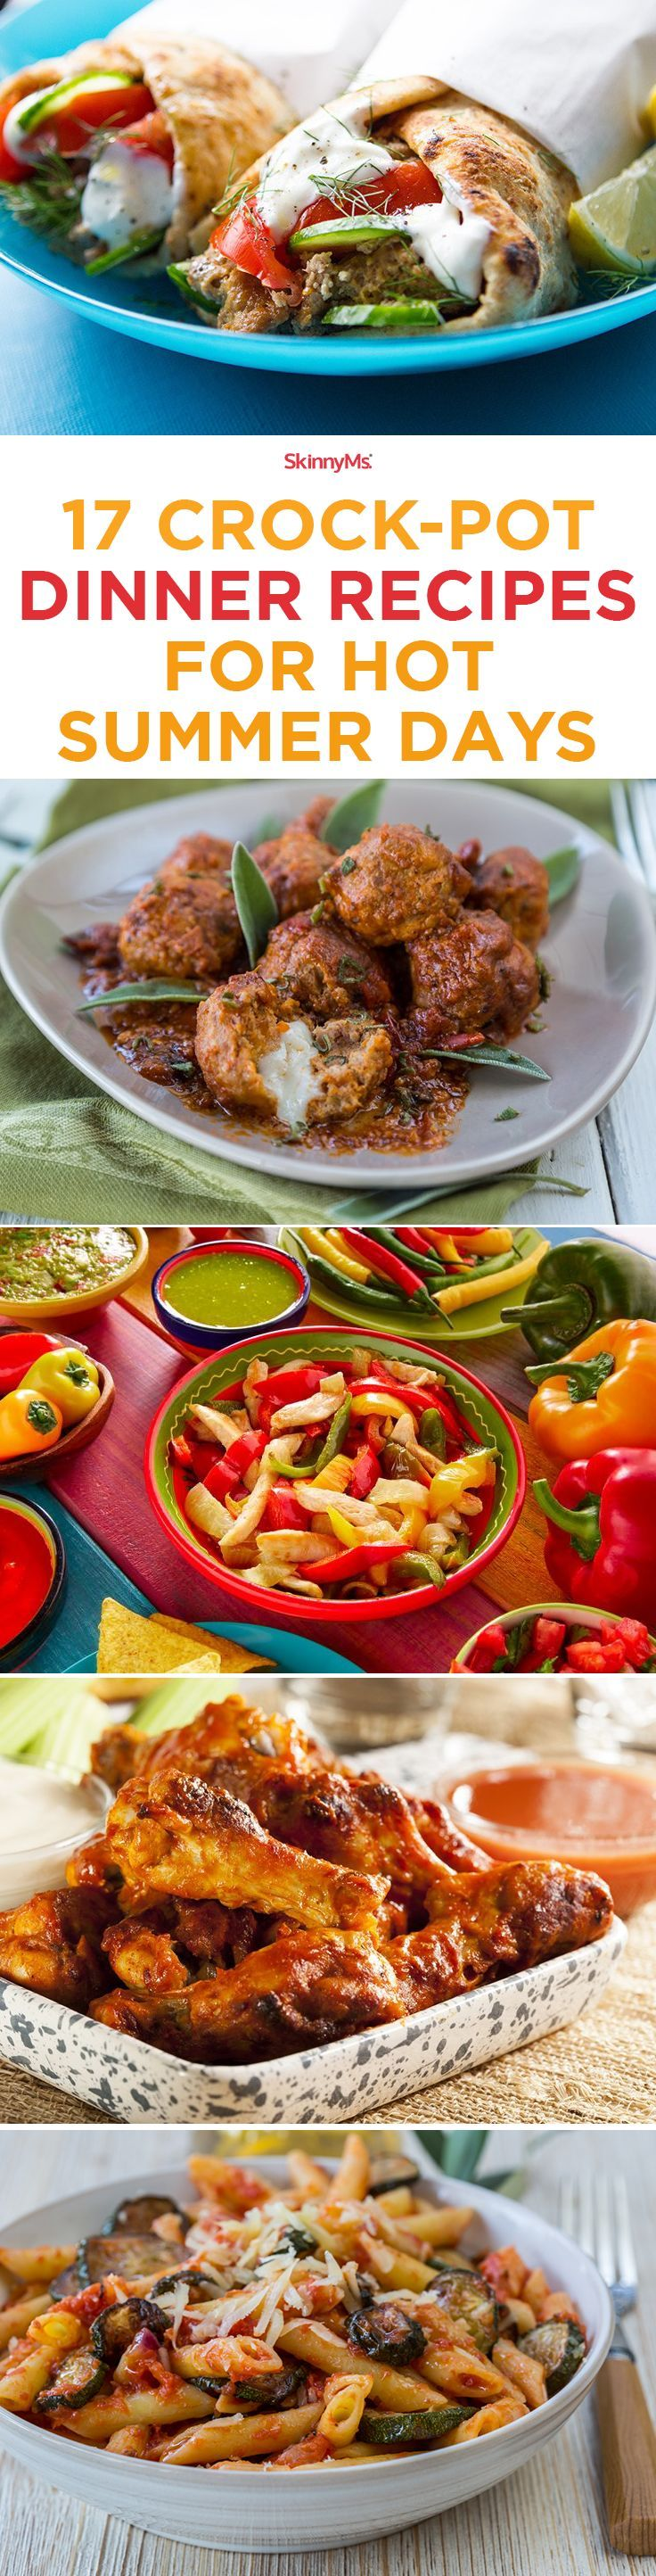 17 Crock-Pot Dinner Recipes for Hot Summer Days!